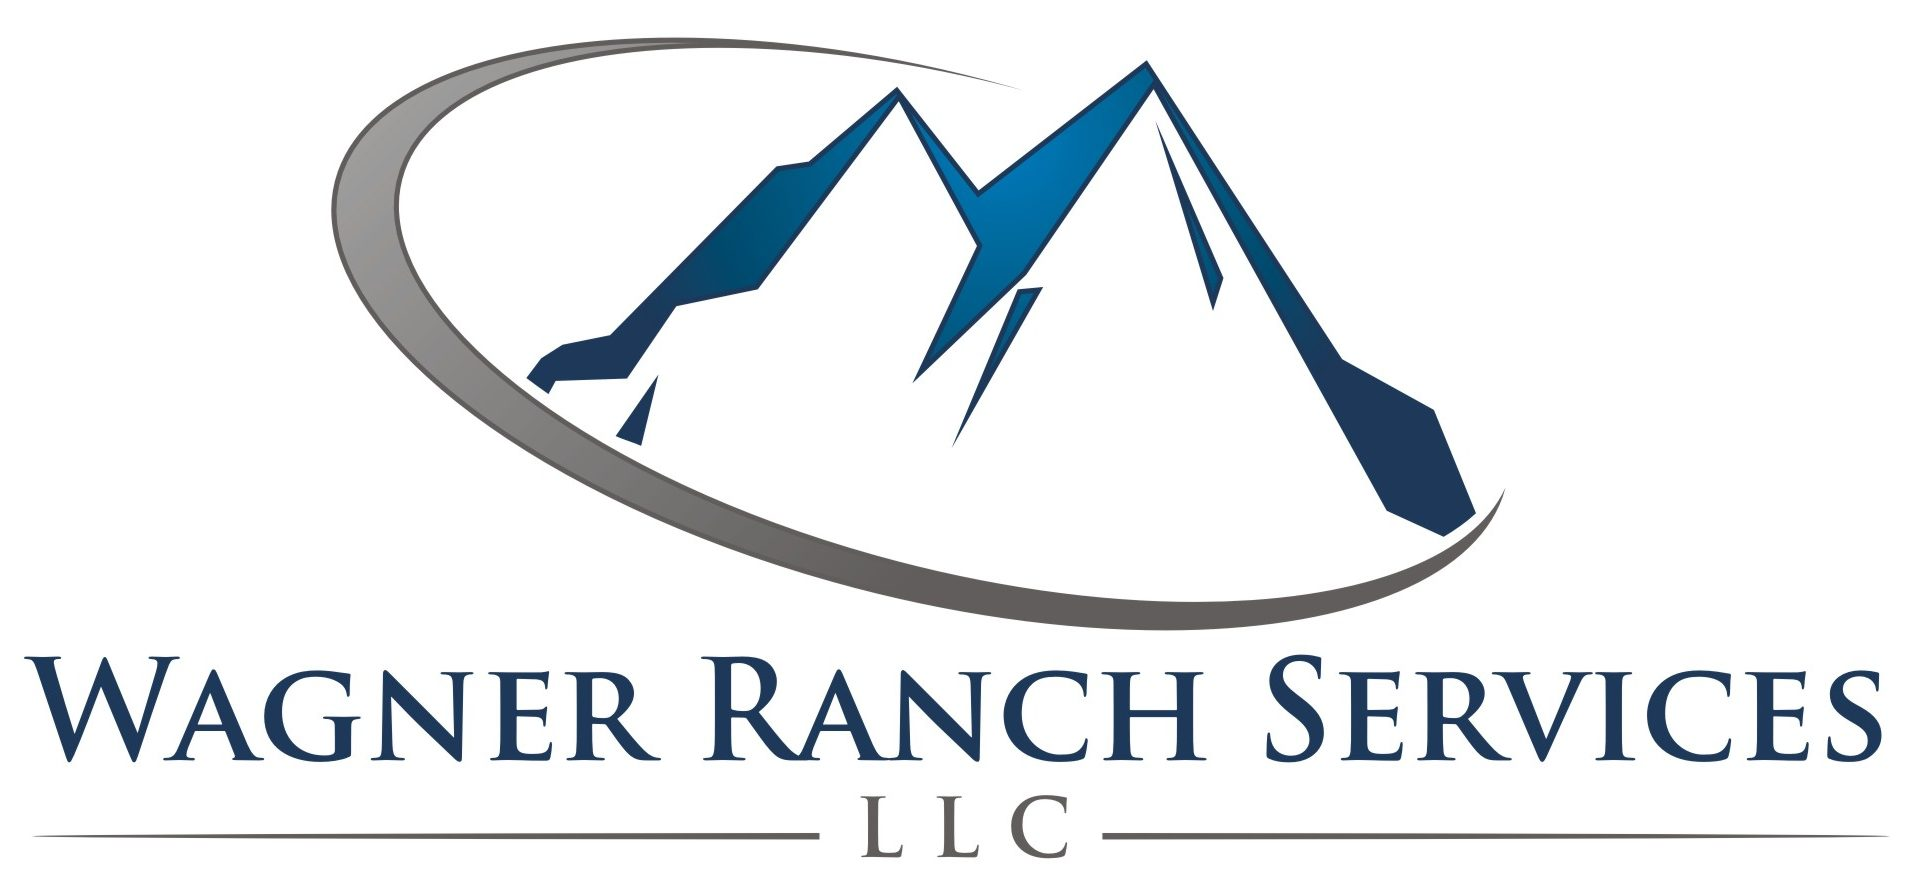 Wagner Ranch Services, LLC